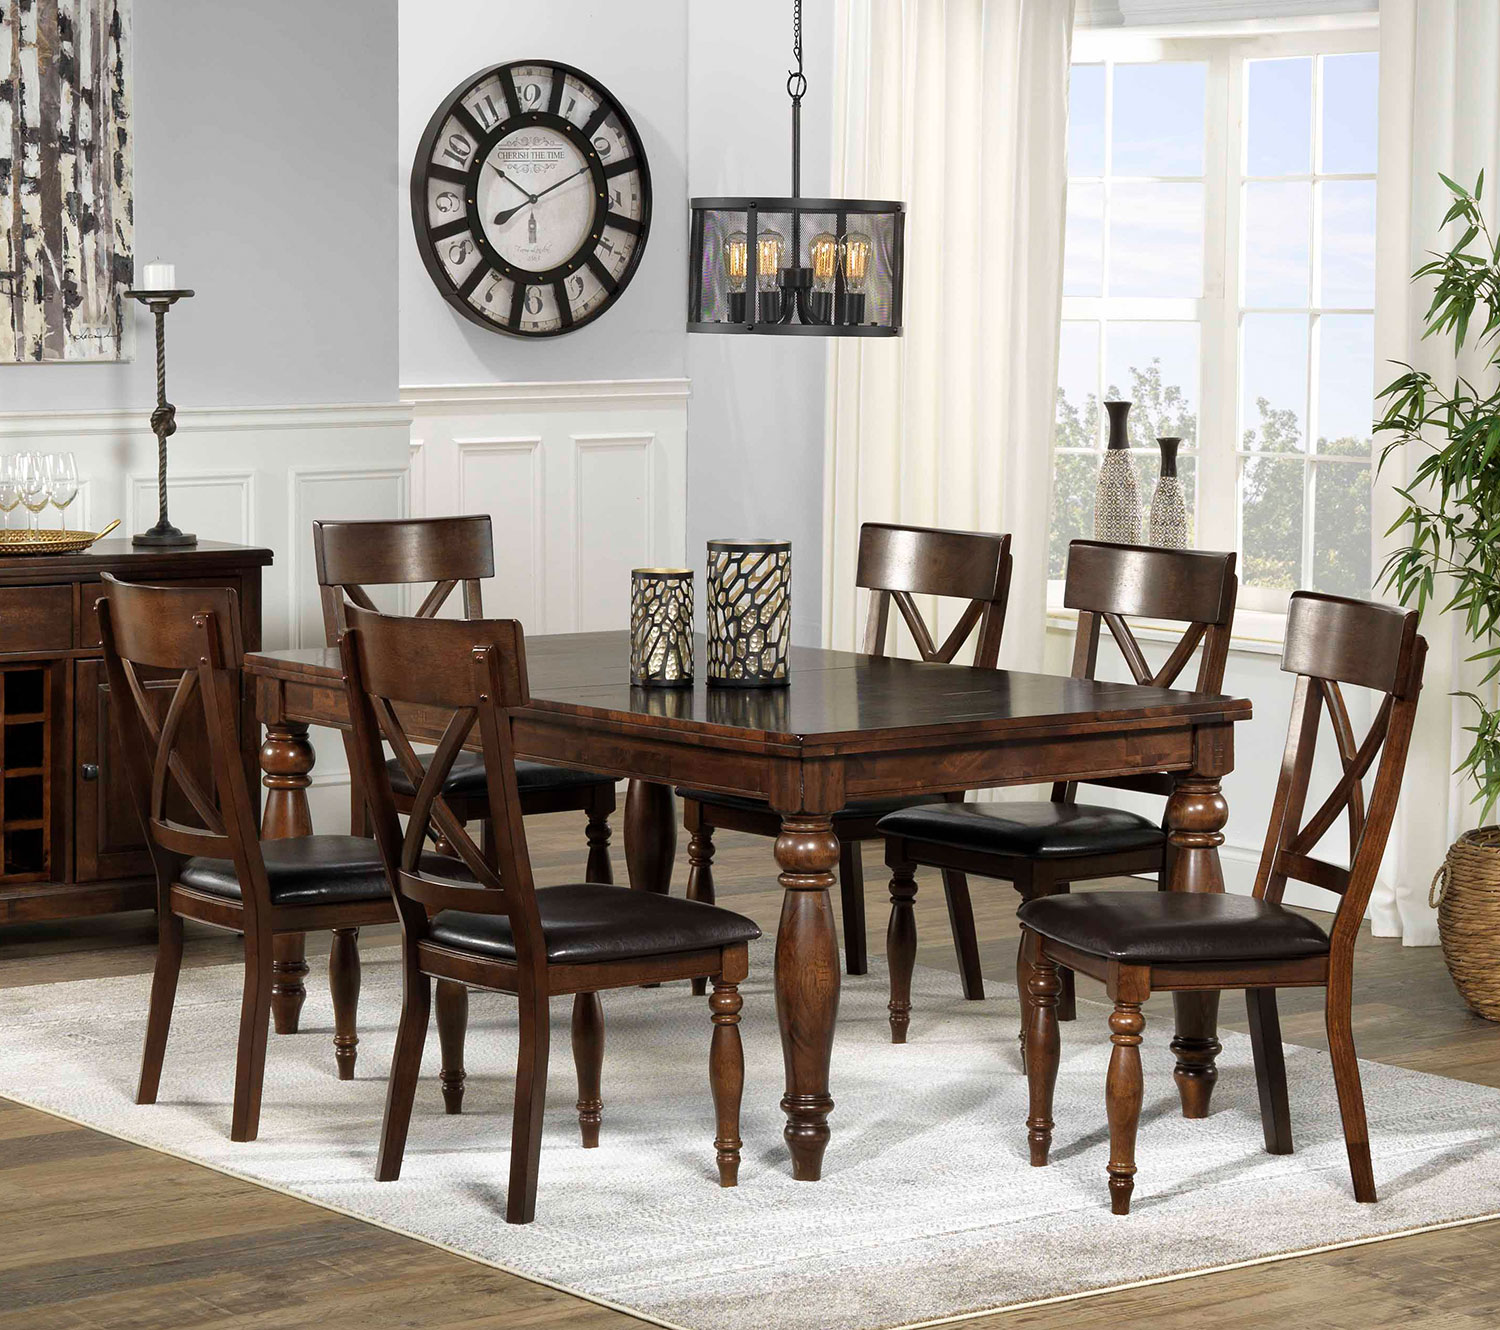 Rooms To Go Dining Sets: Kingstown 7-Piece Dining Room Set - Chocolate